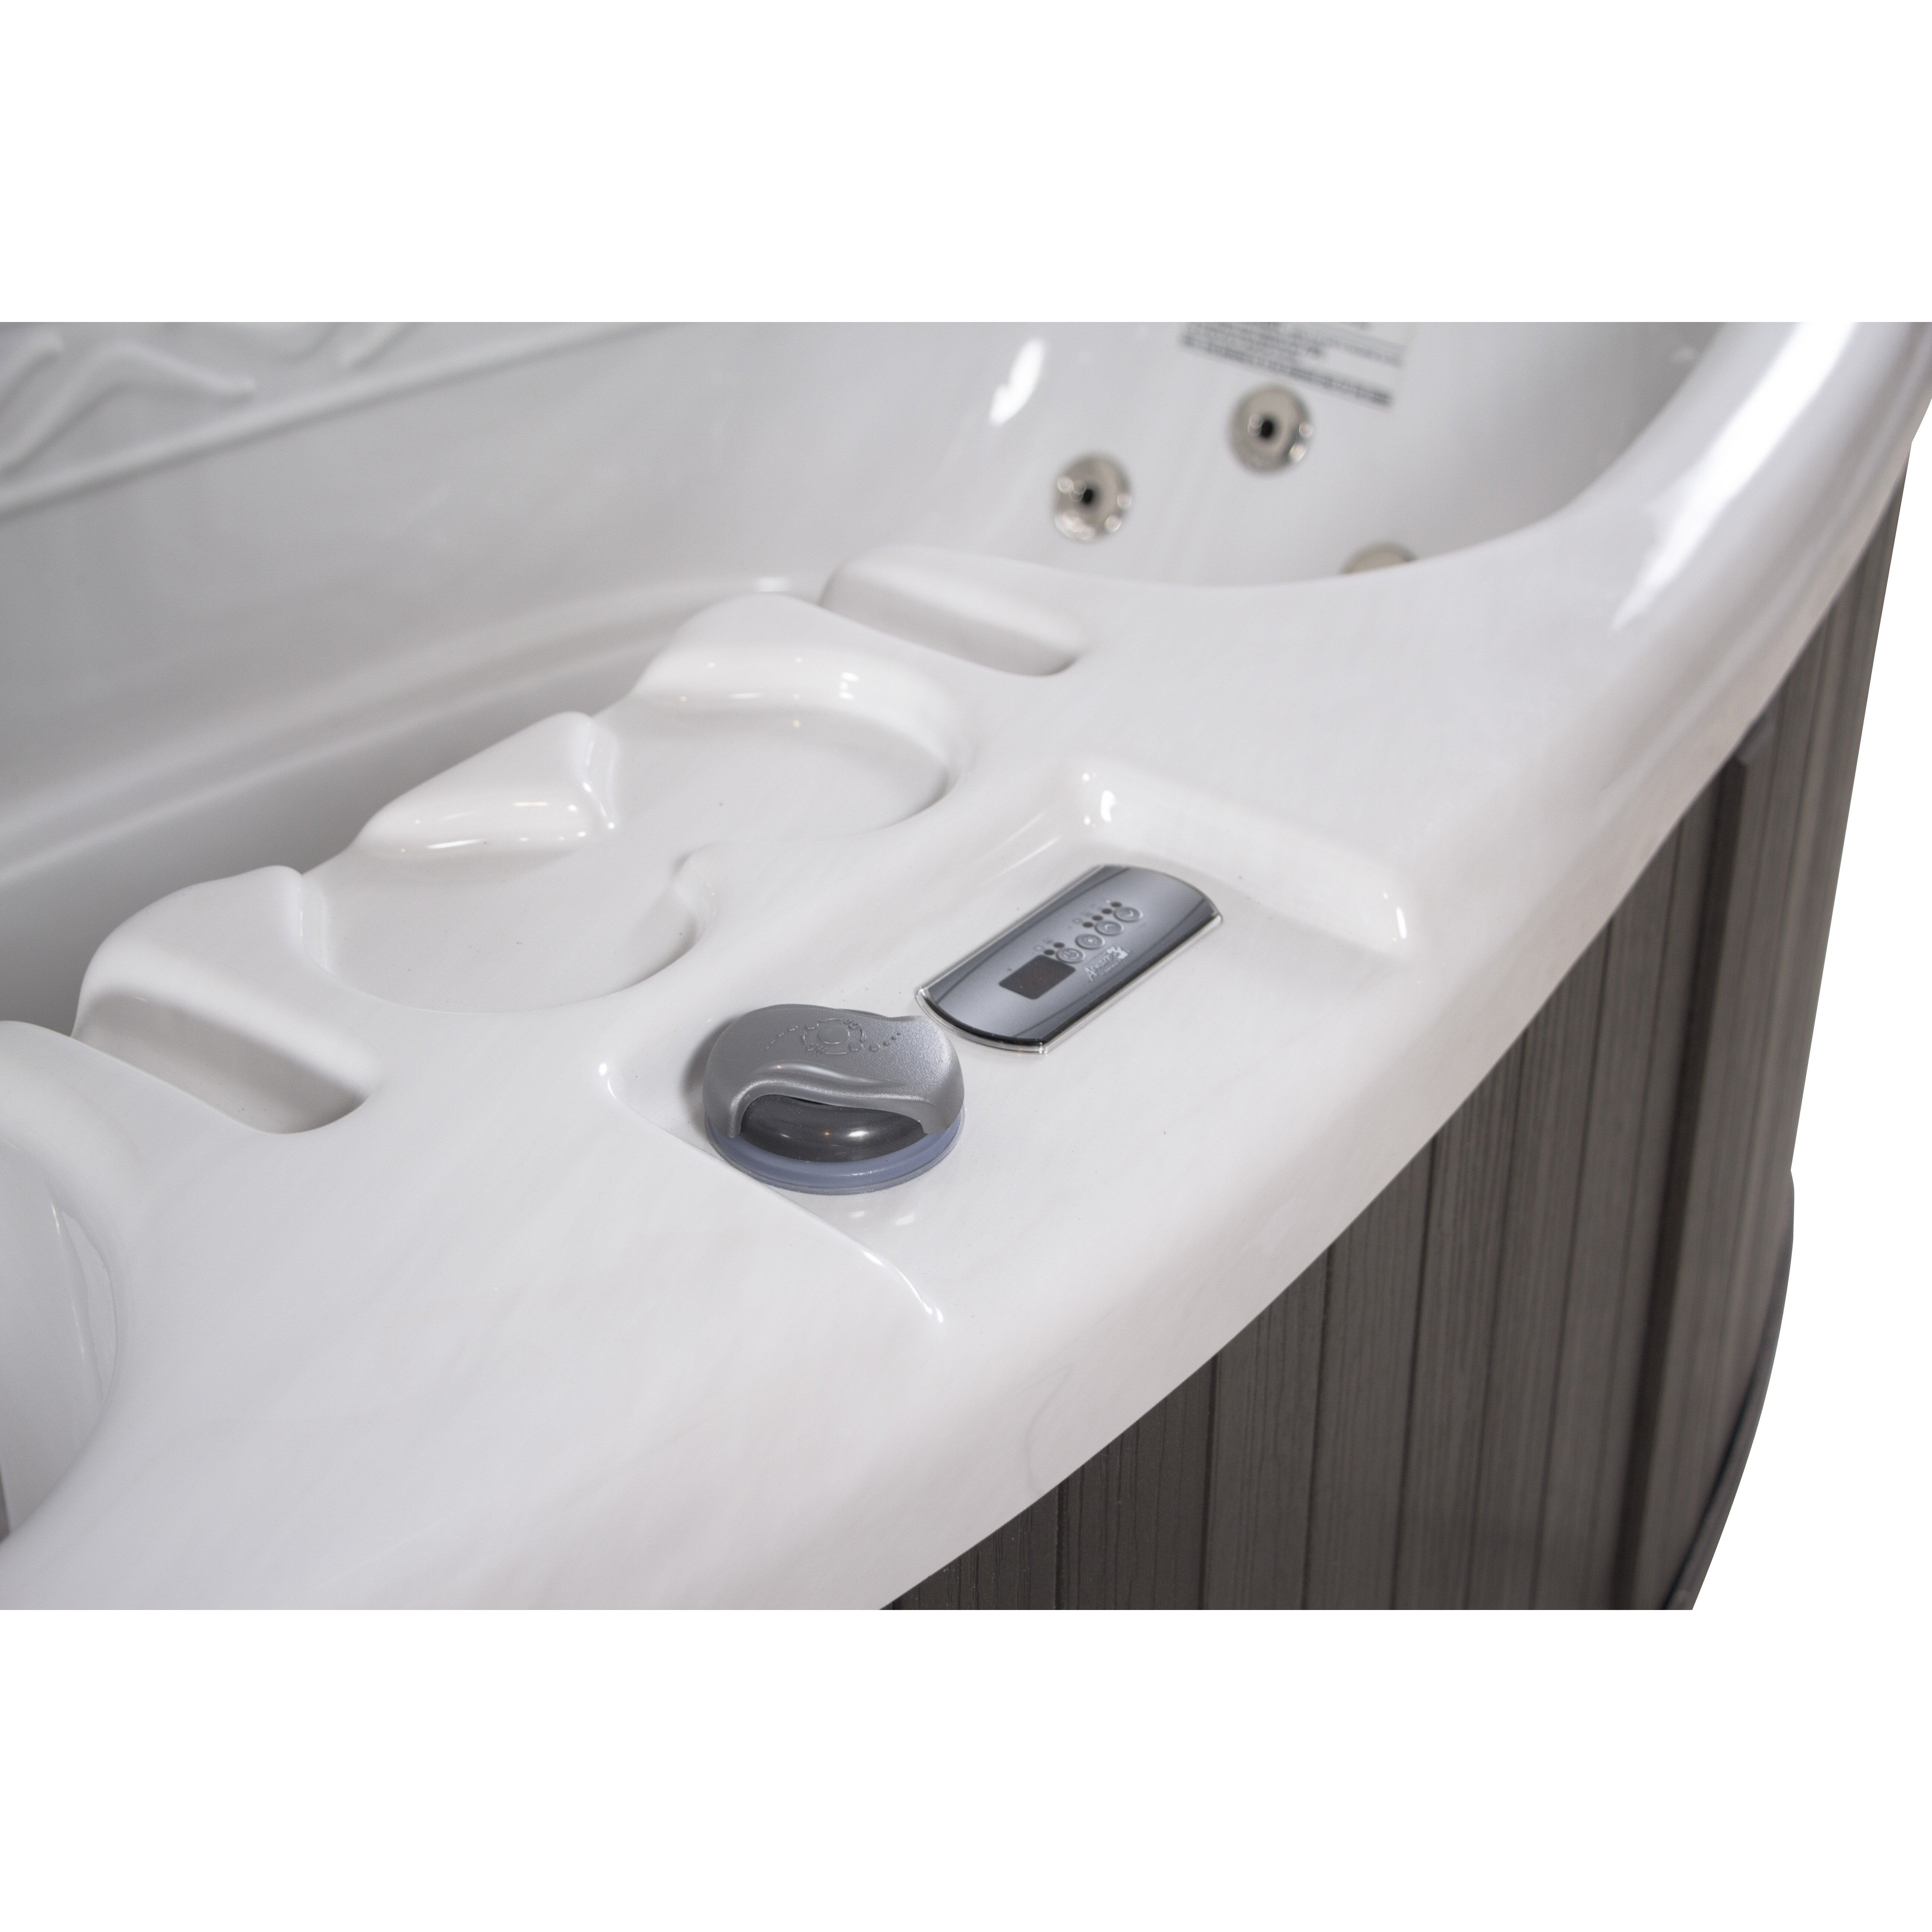 Jacuzzi Insert For Bathtub Tubethevote Qca Spas Cordoba 2 Person 16 Jet  Plug And Play Spa